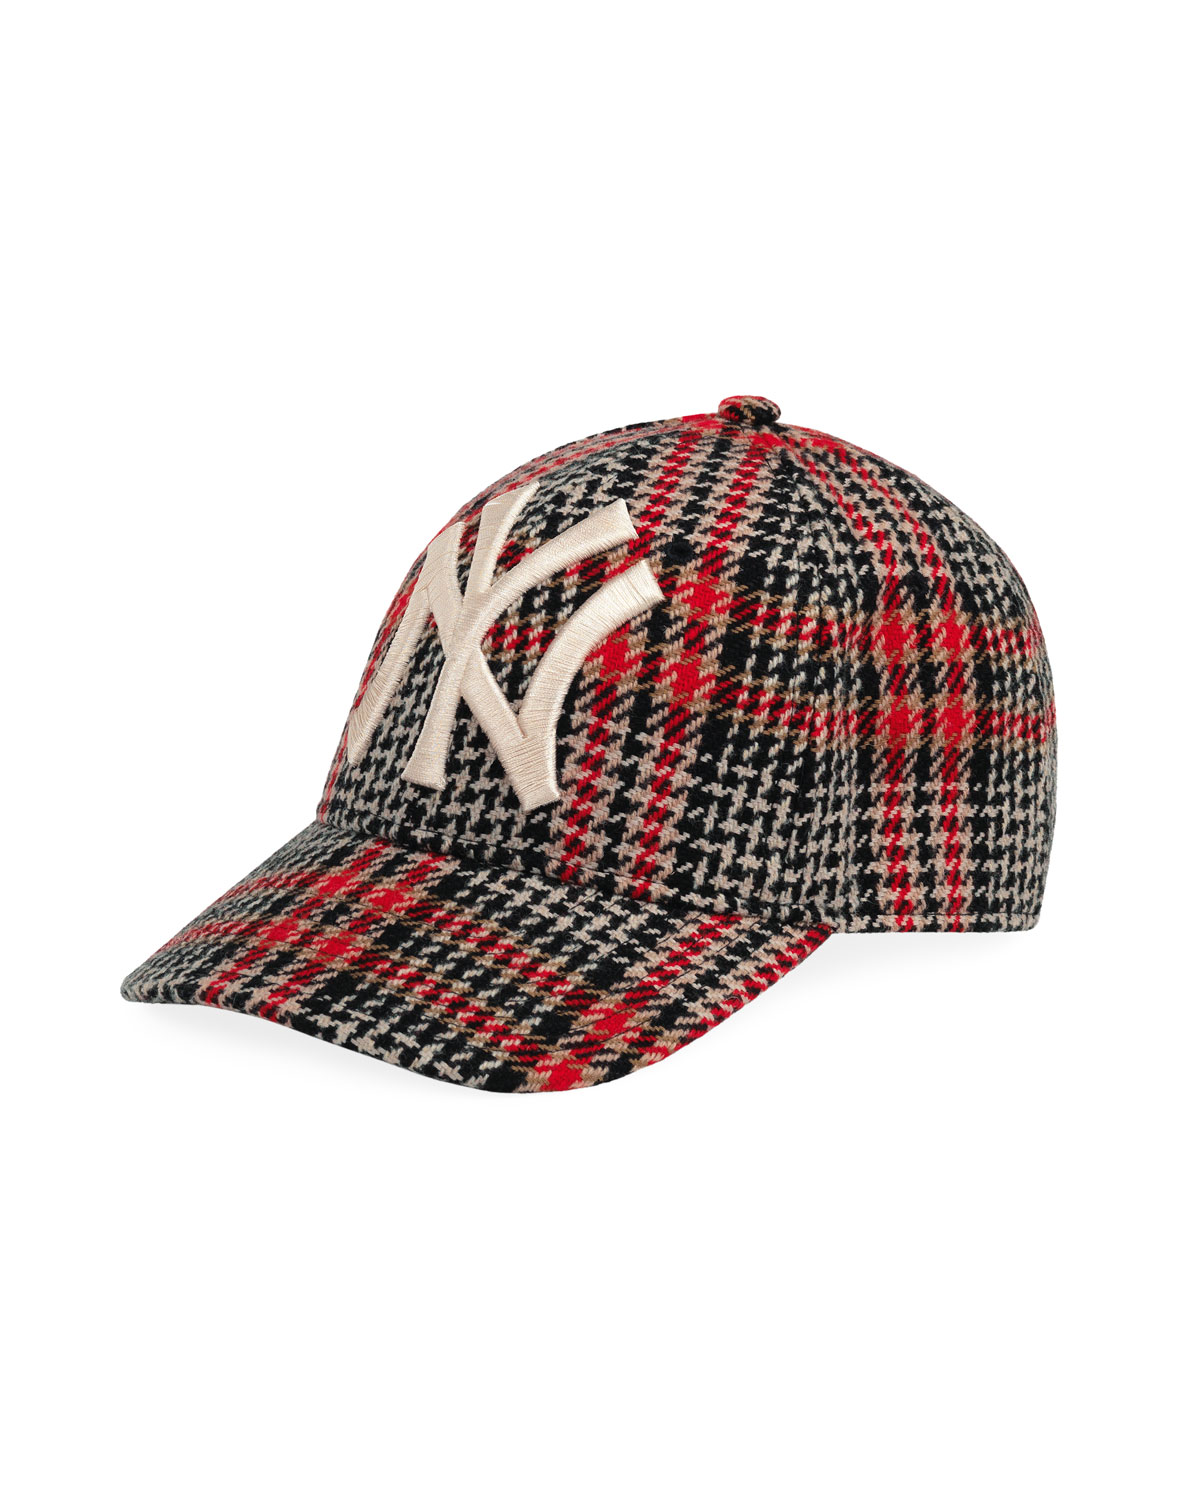 fa564815 Gucci Men's Houndstooth Baseball Cap with NY Yankees Applique ...